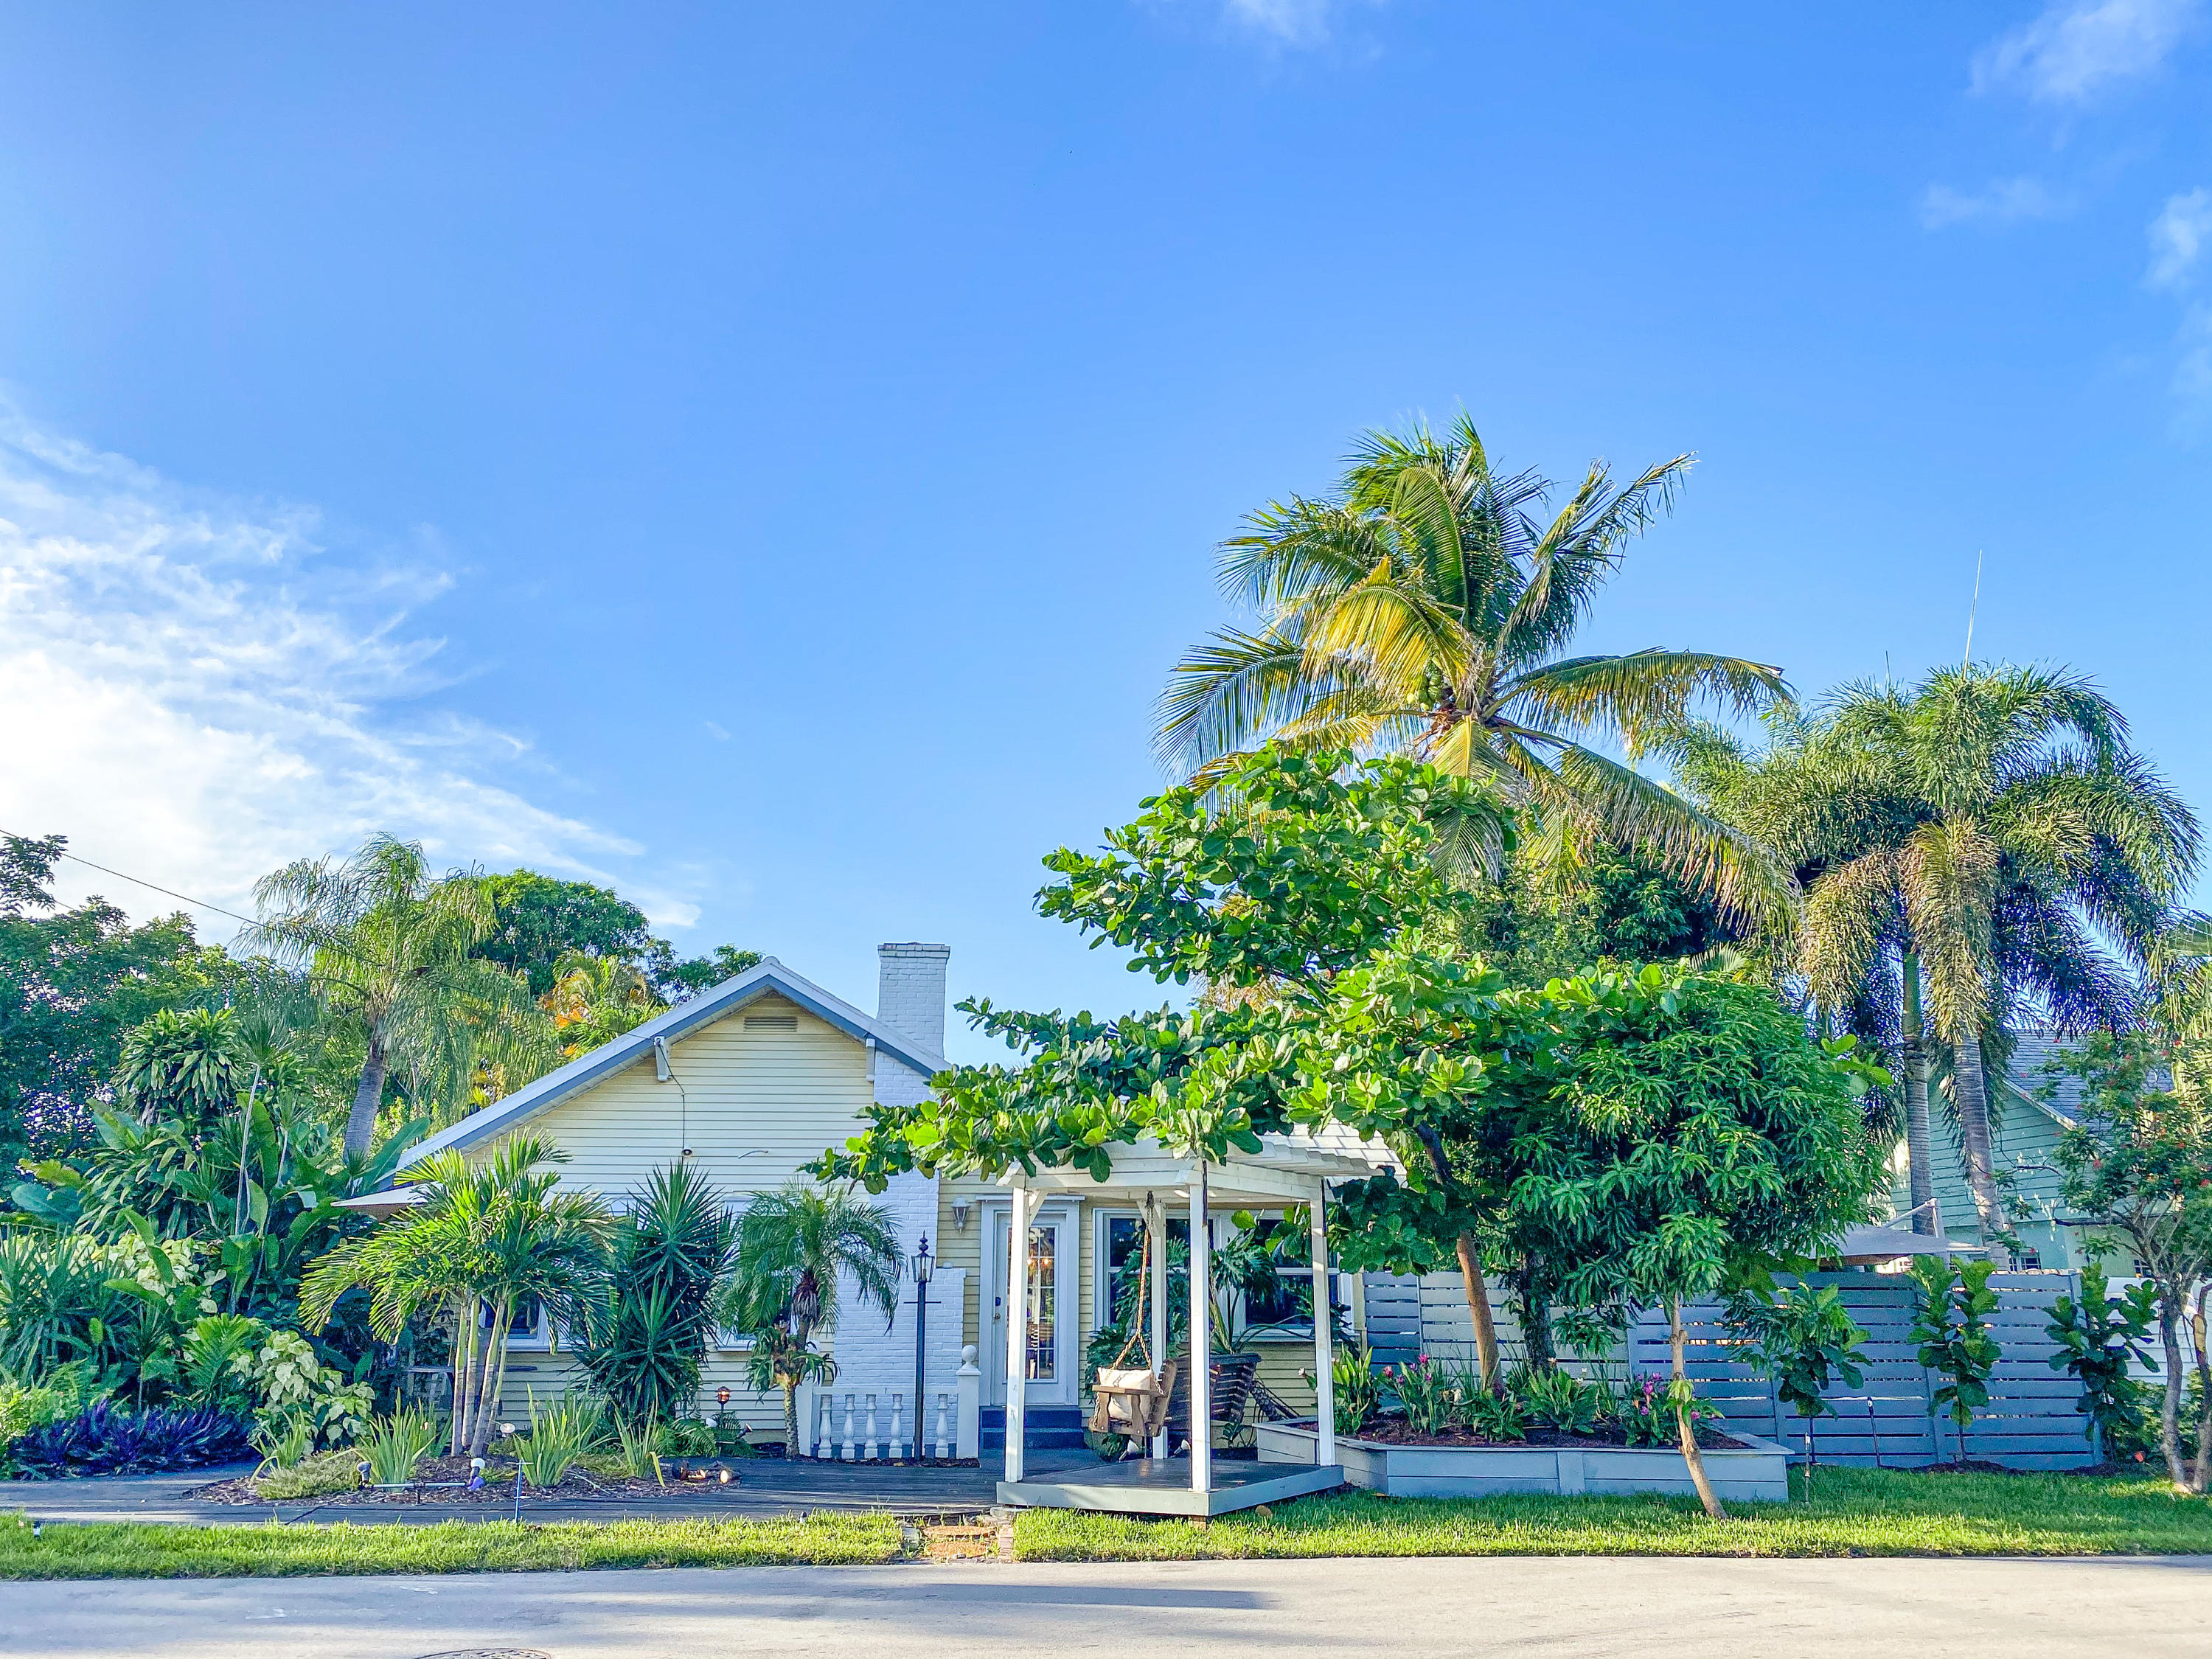 700 NE 17th Avenue - 33304 - FL - Fort Lauderdale